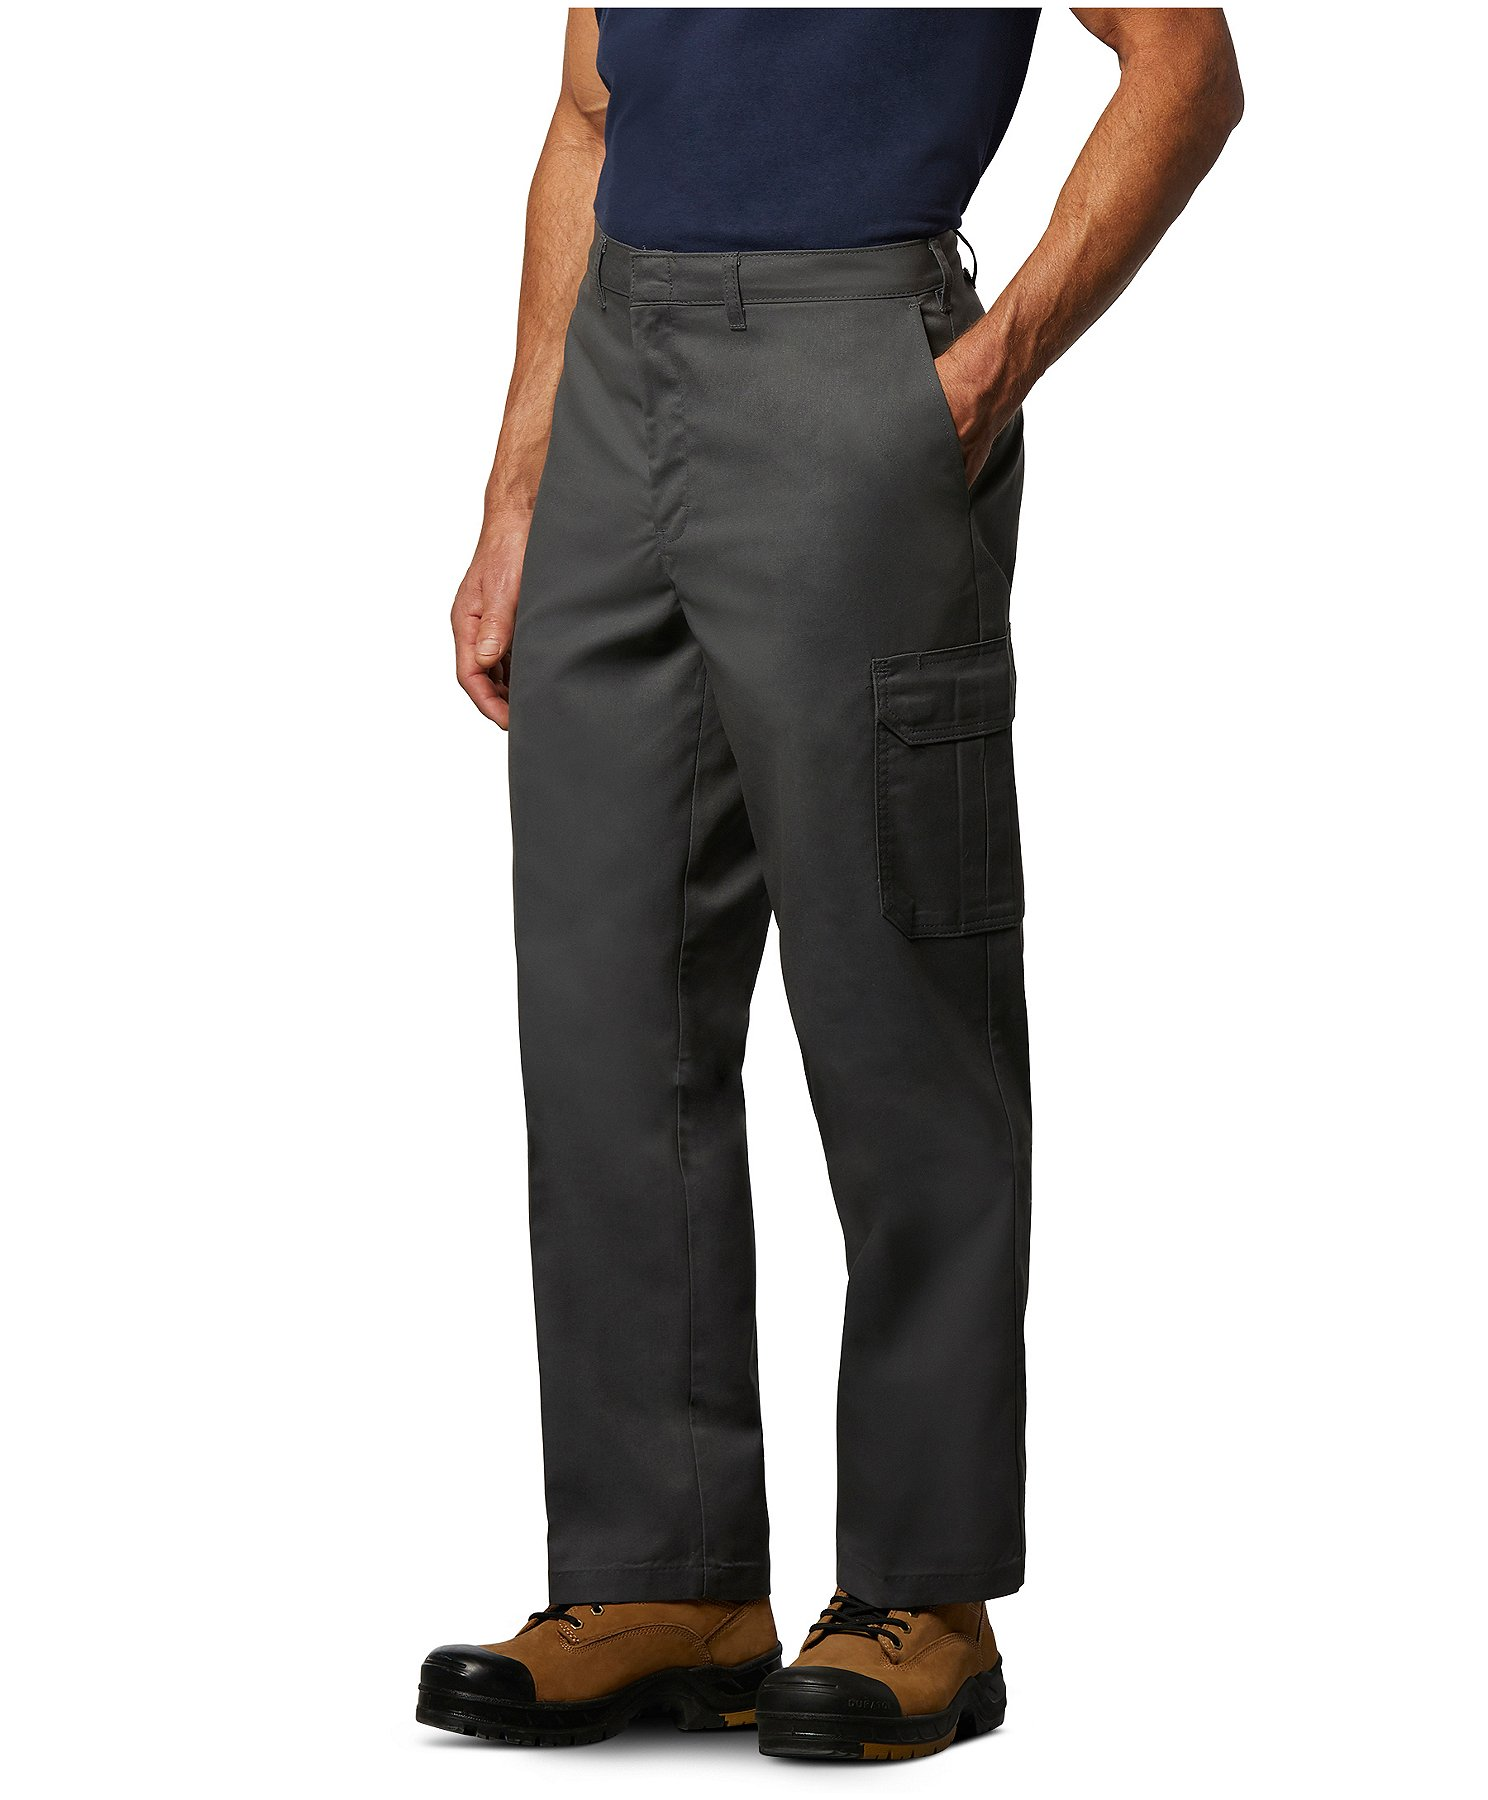 compare price limited sale limited guantity Men's Stretch Cargo Work Pants